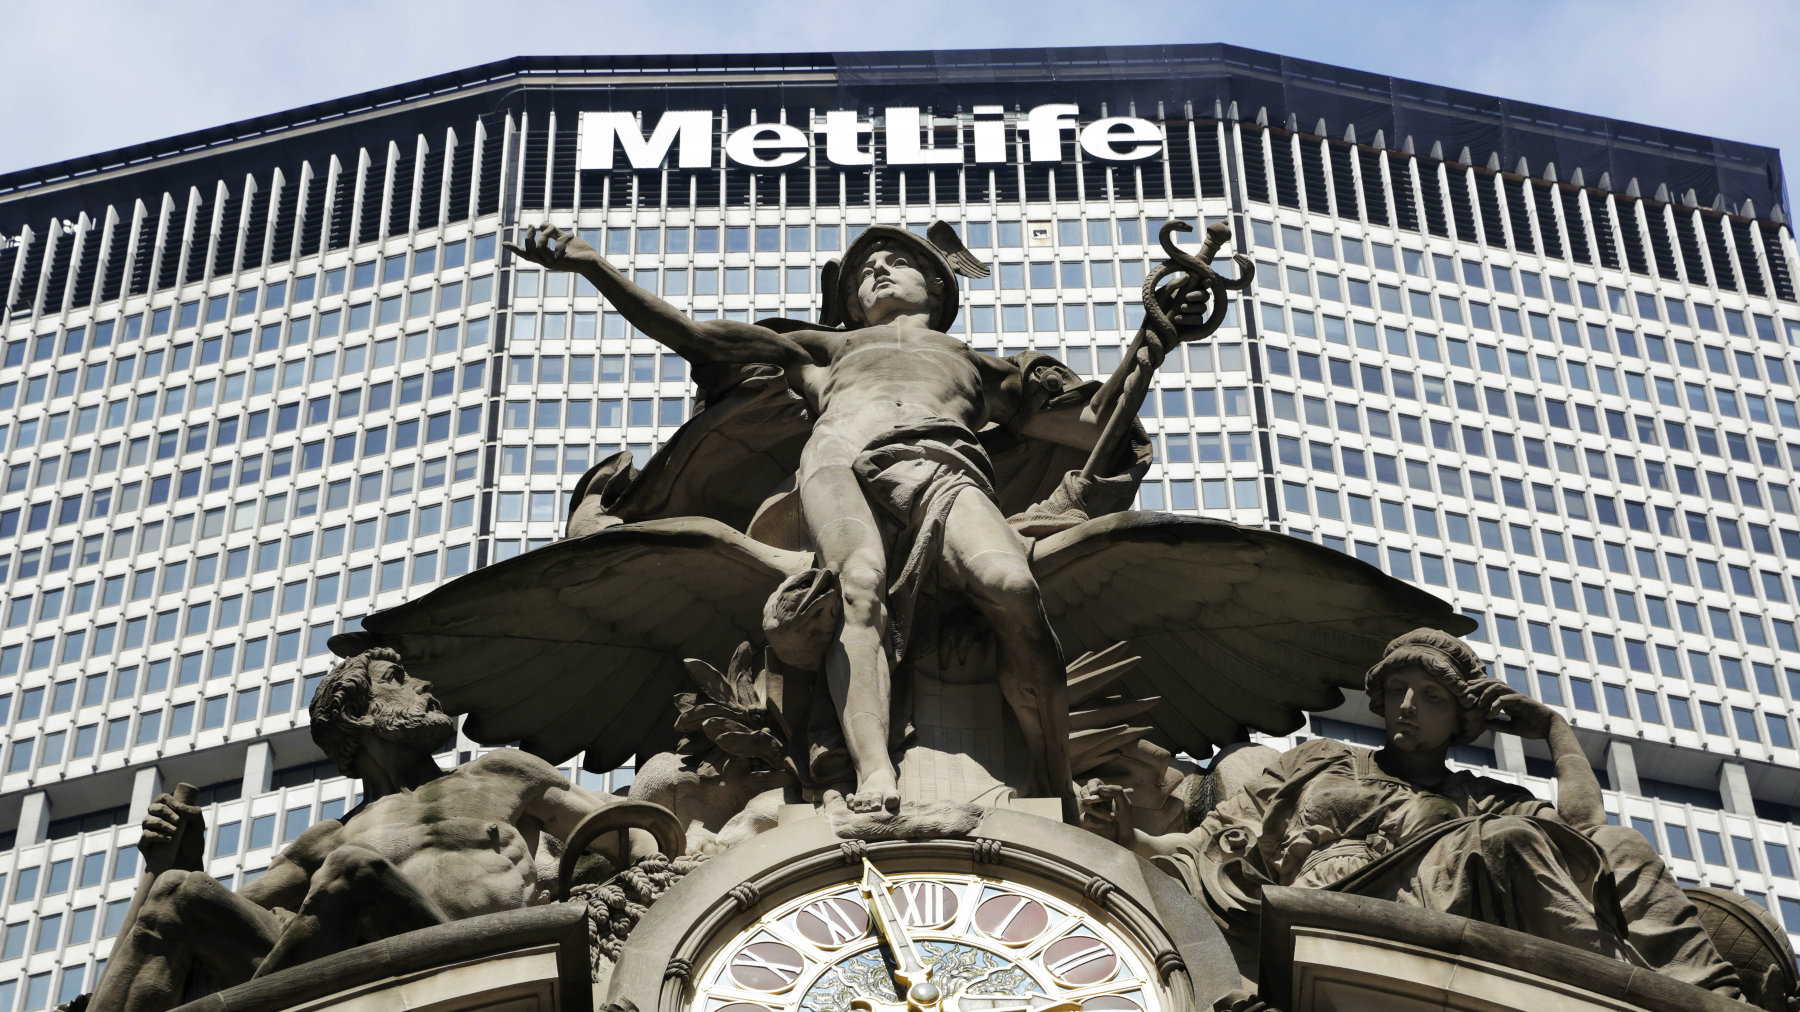 The MetLife building towers above Jules-Alexis Coutane's statue of Mercury on Grand Central Terminal in New York.